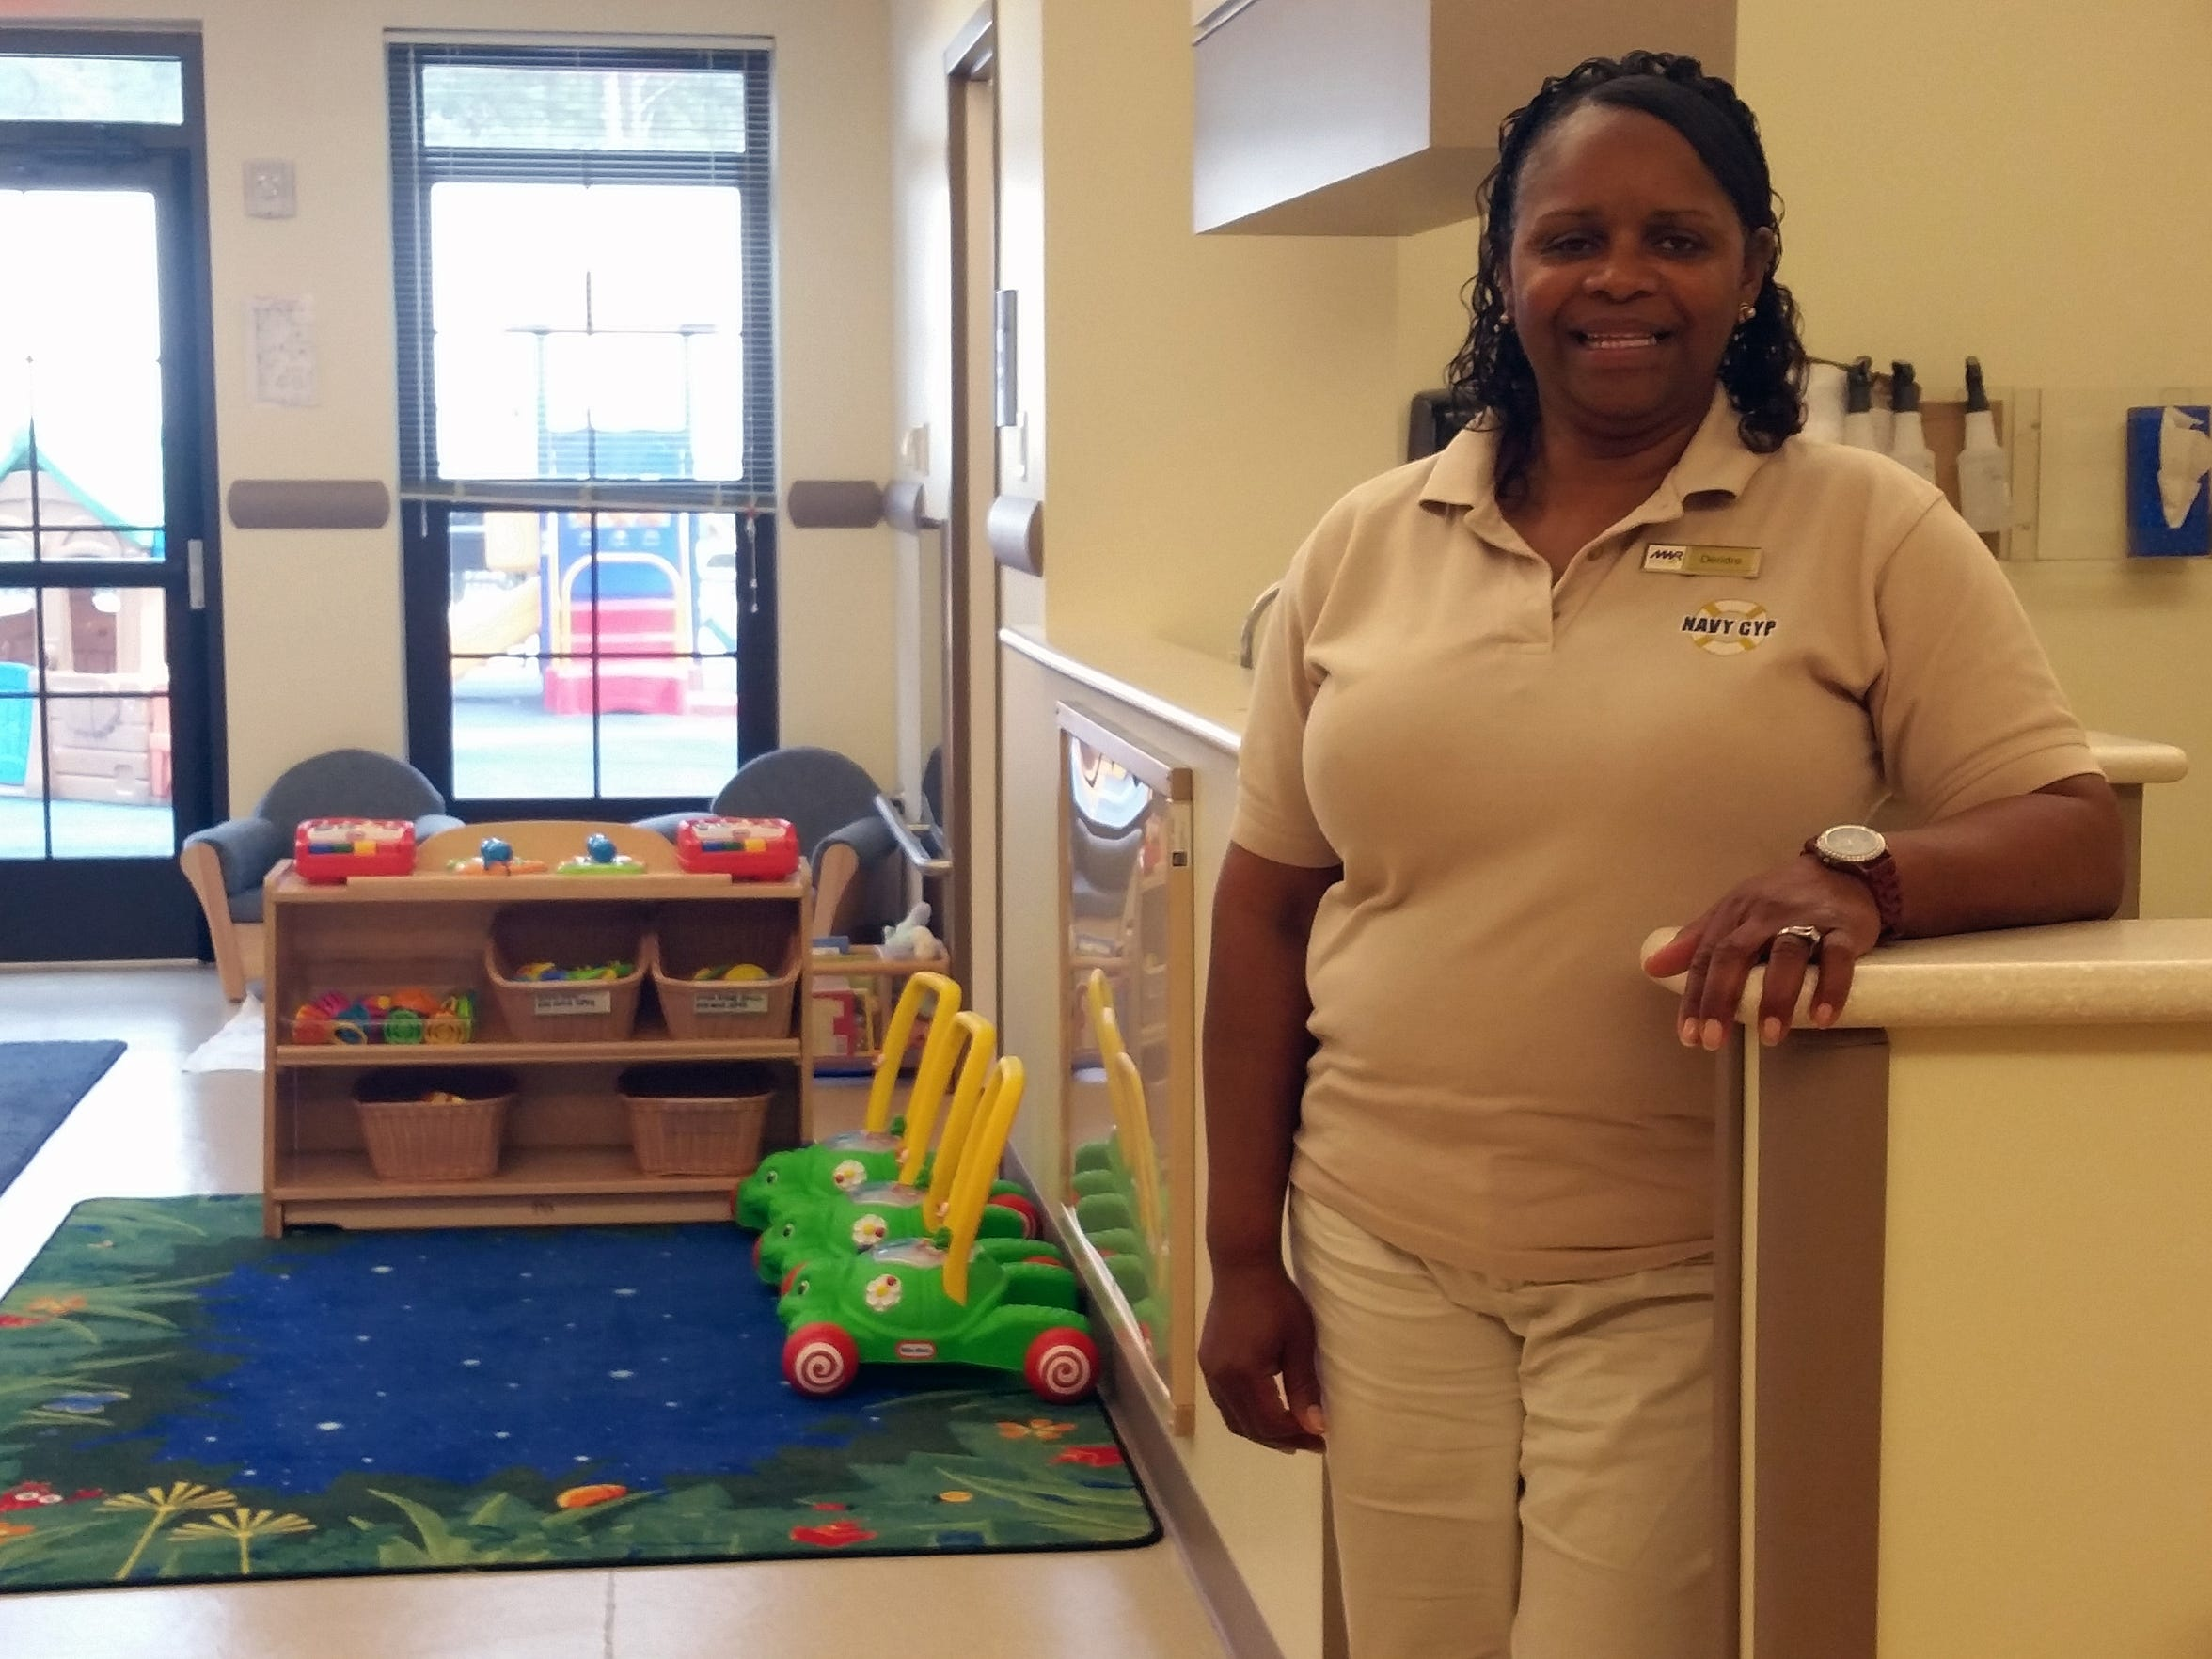 Deridre Odom, Child and Youth program manager at the Meridian Naval Air Station, says she embraces the high standards and accountability the military child care system has in place.